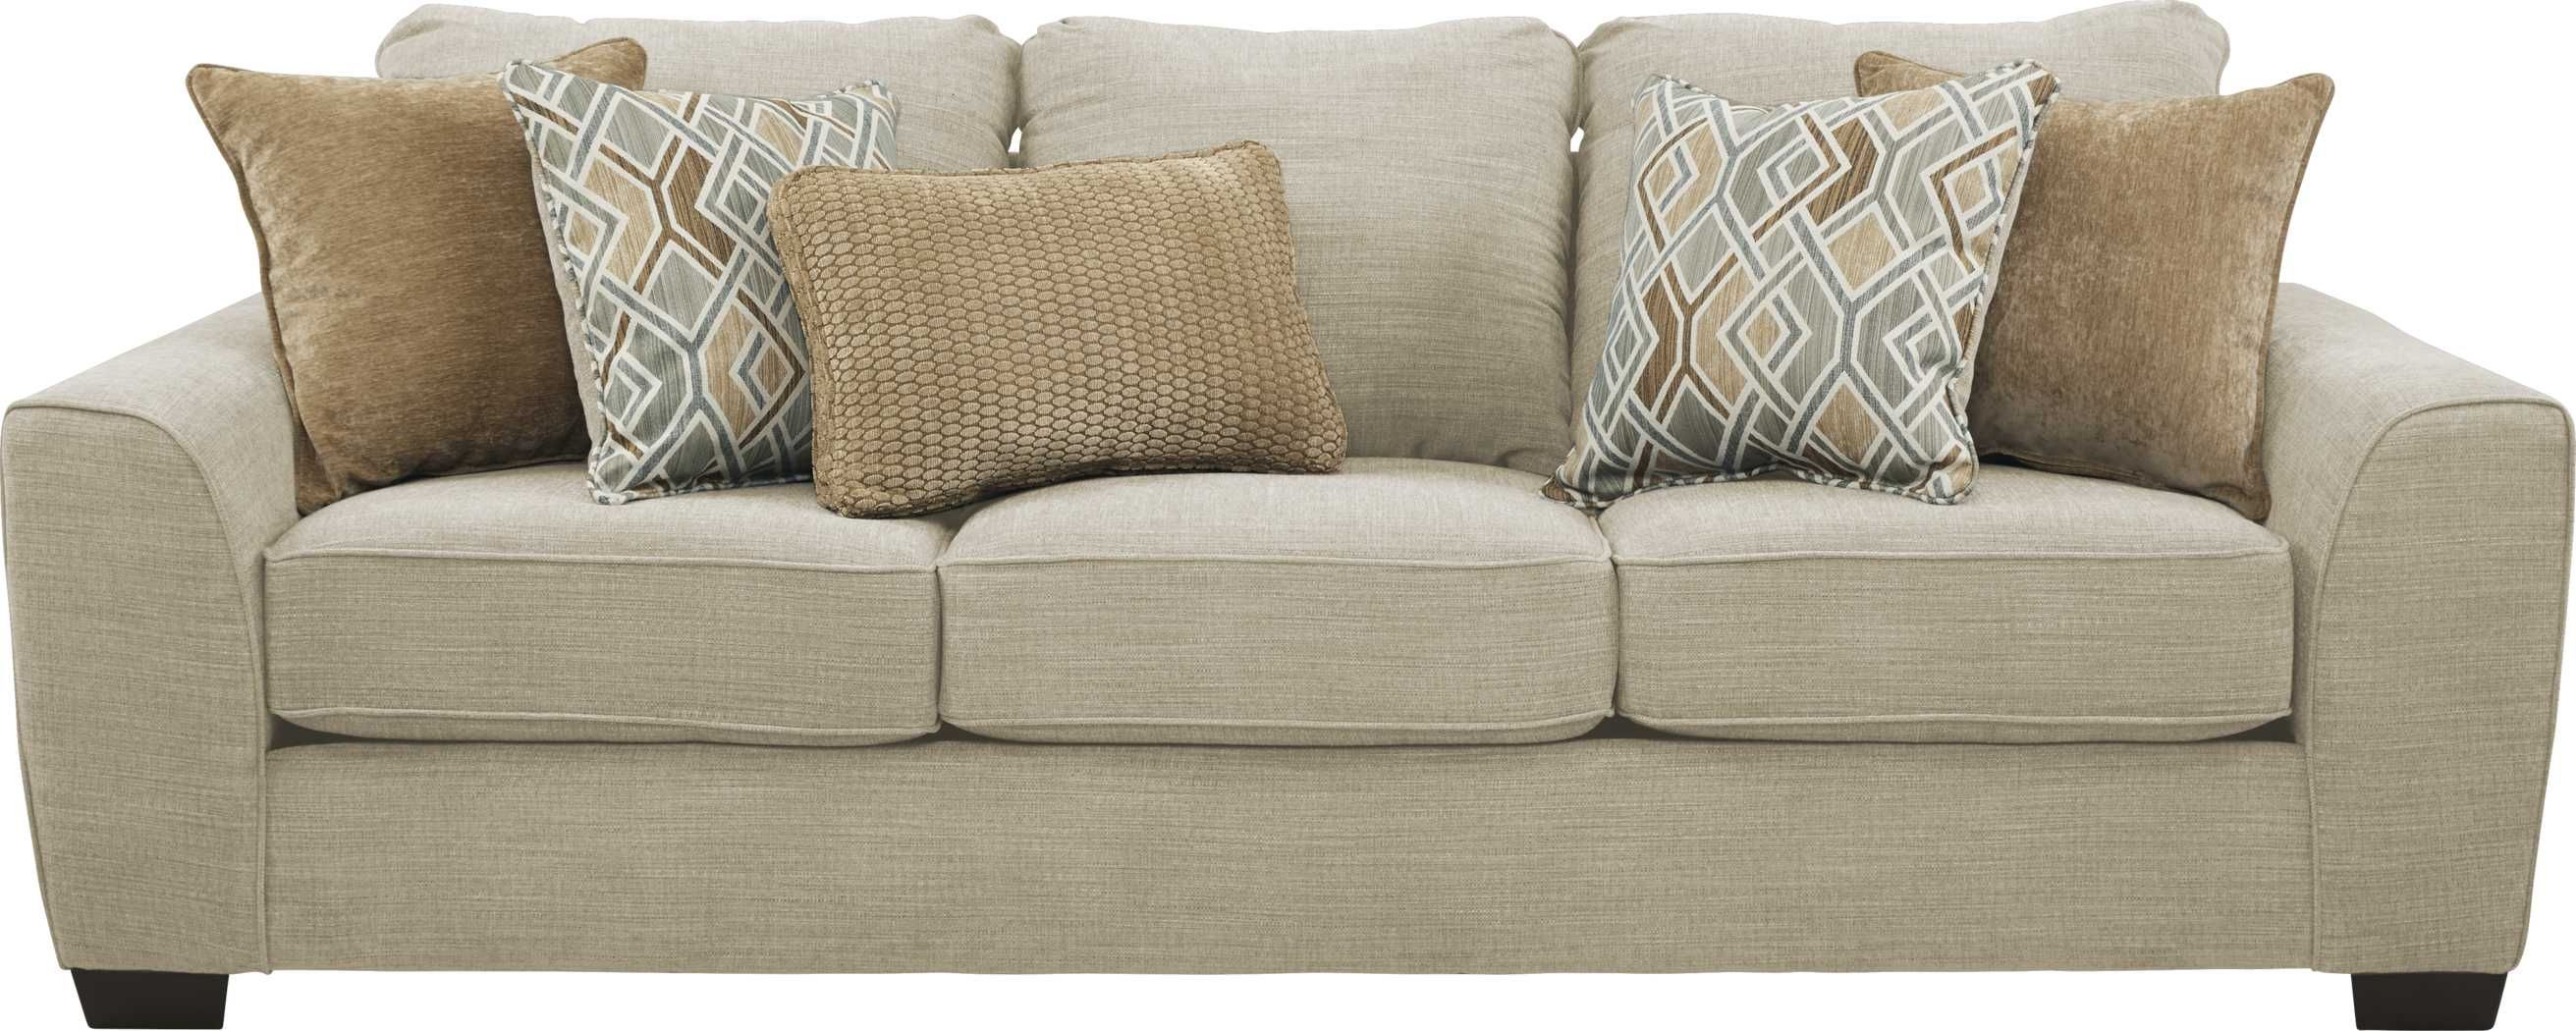 Best Ivyleigh Wheat Sofa Living Room Sets Furniture Silver 400 x 300